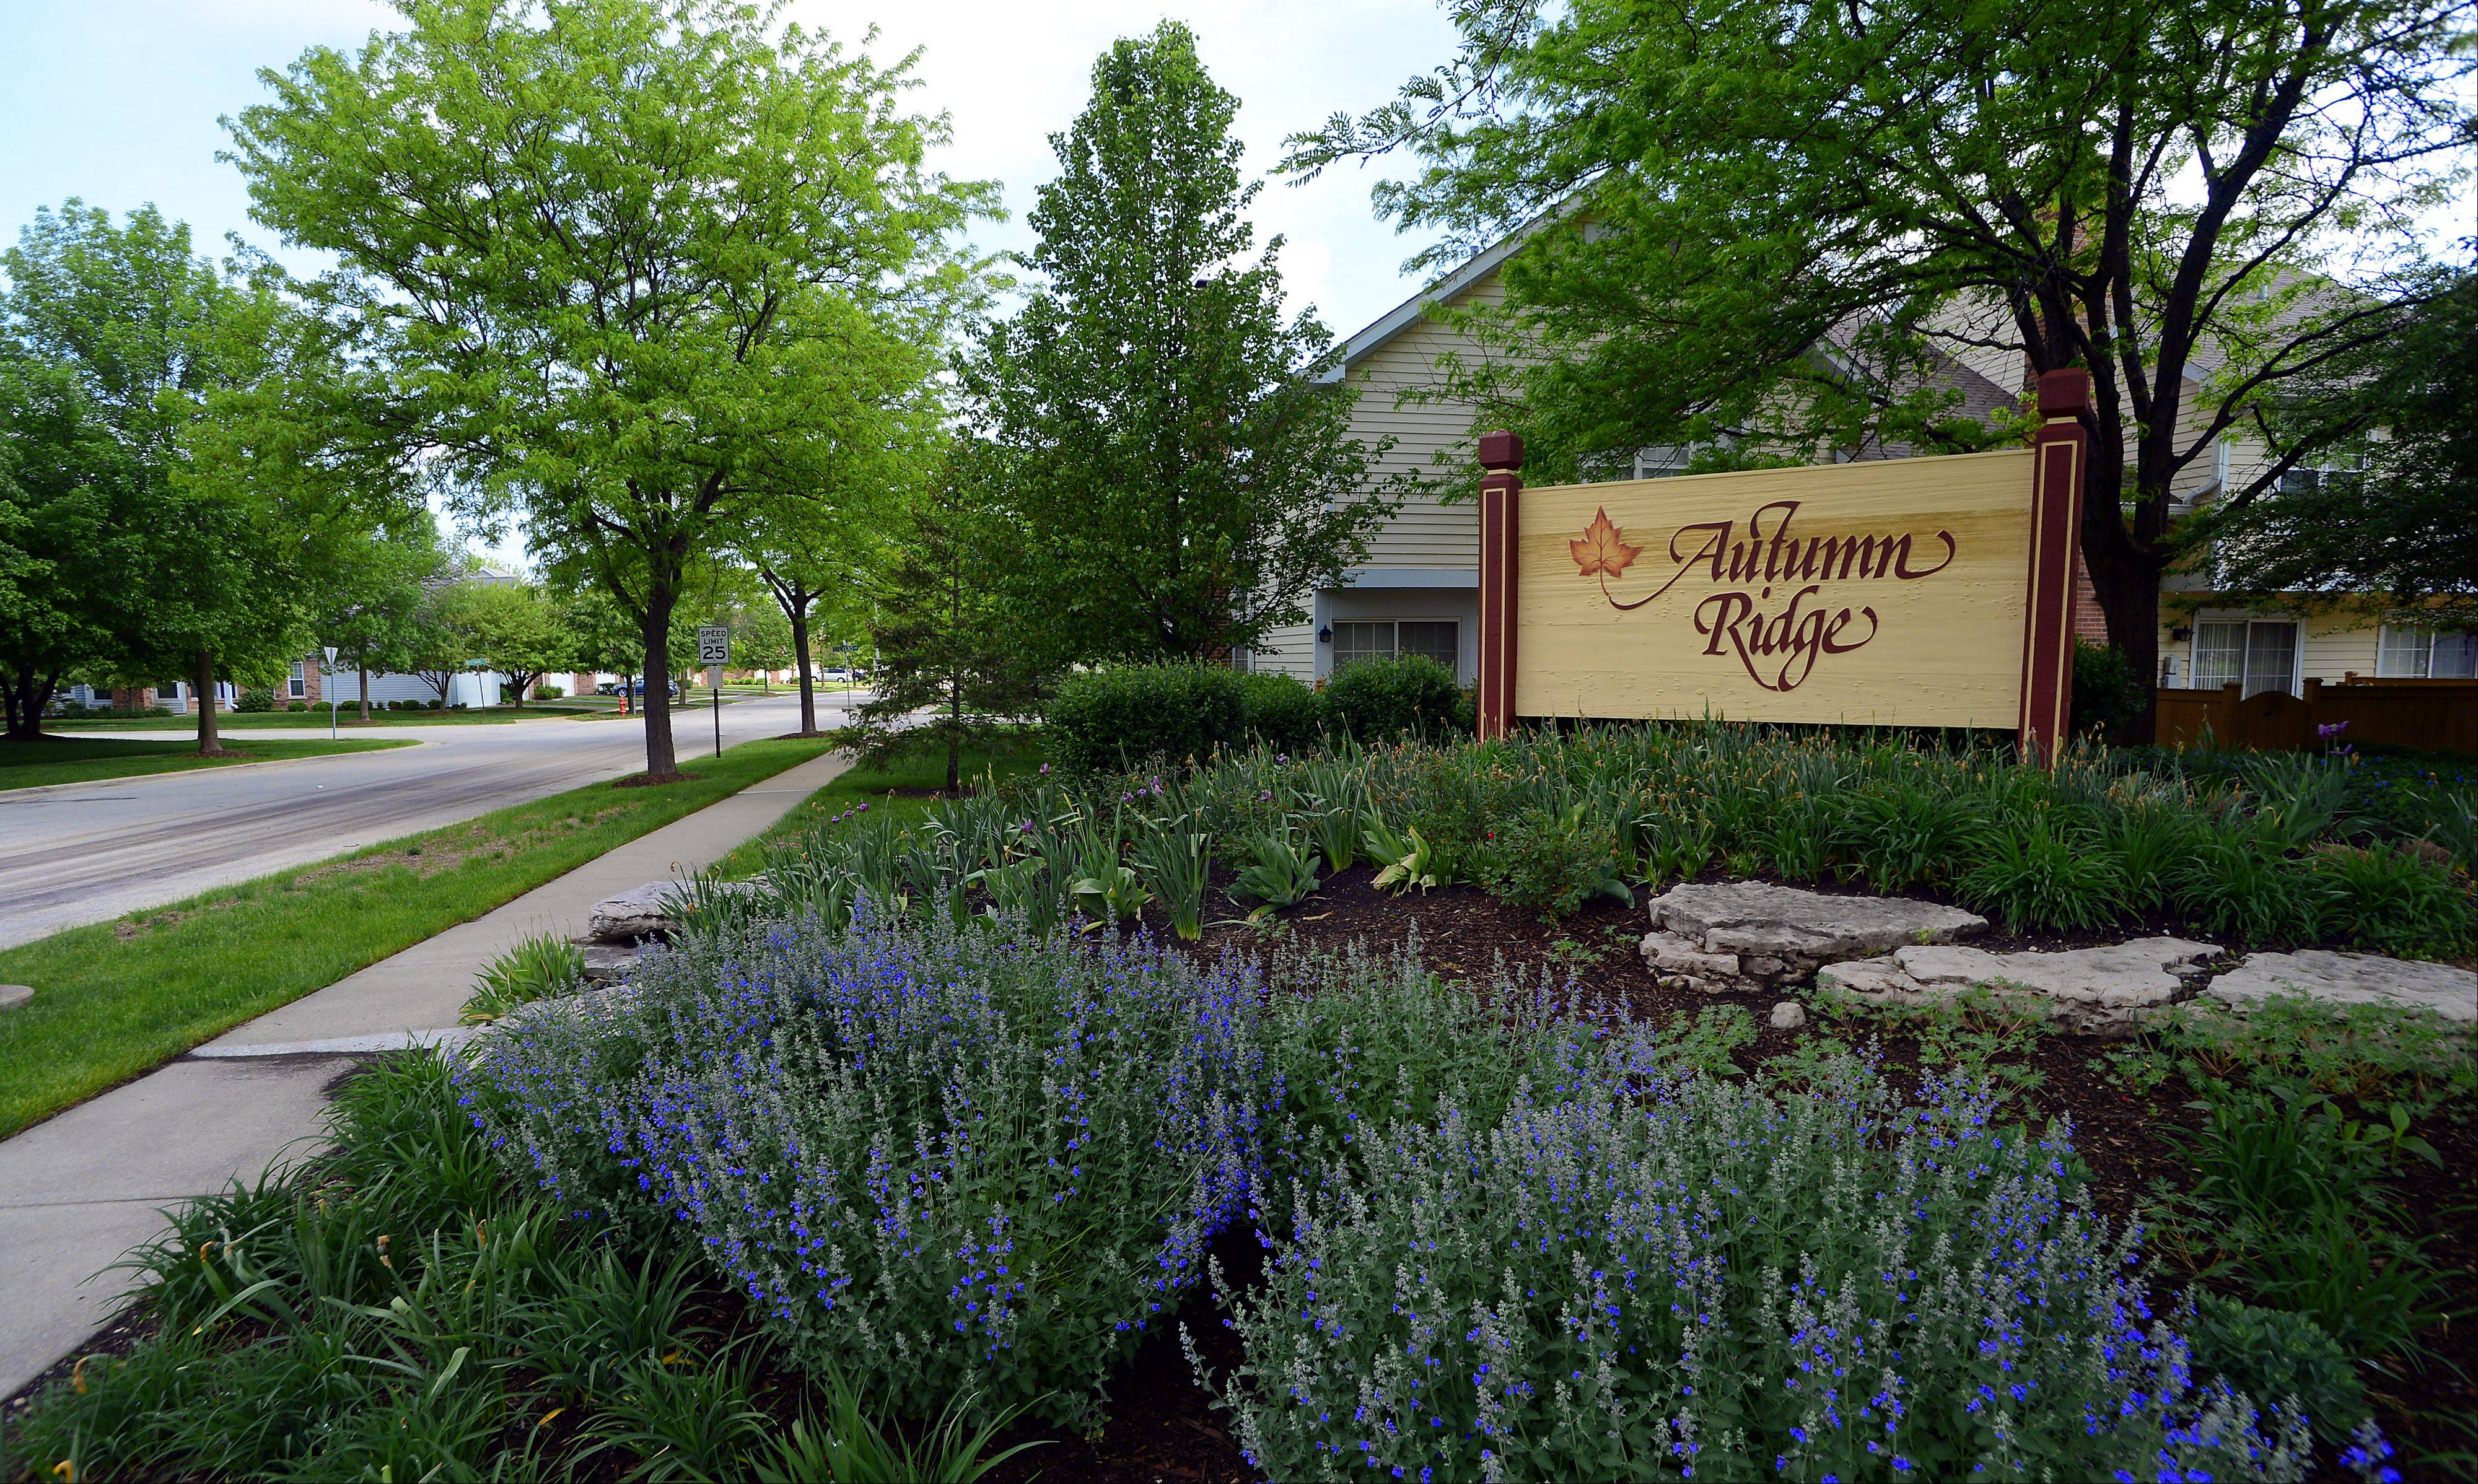 The homeowners association at Autumn Ridge provides for exterior maintenance and landscaping.